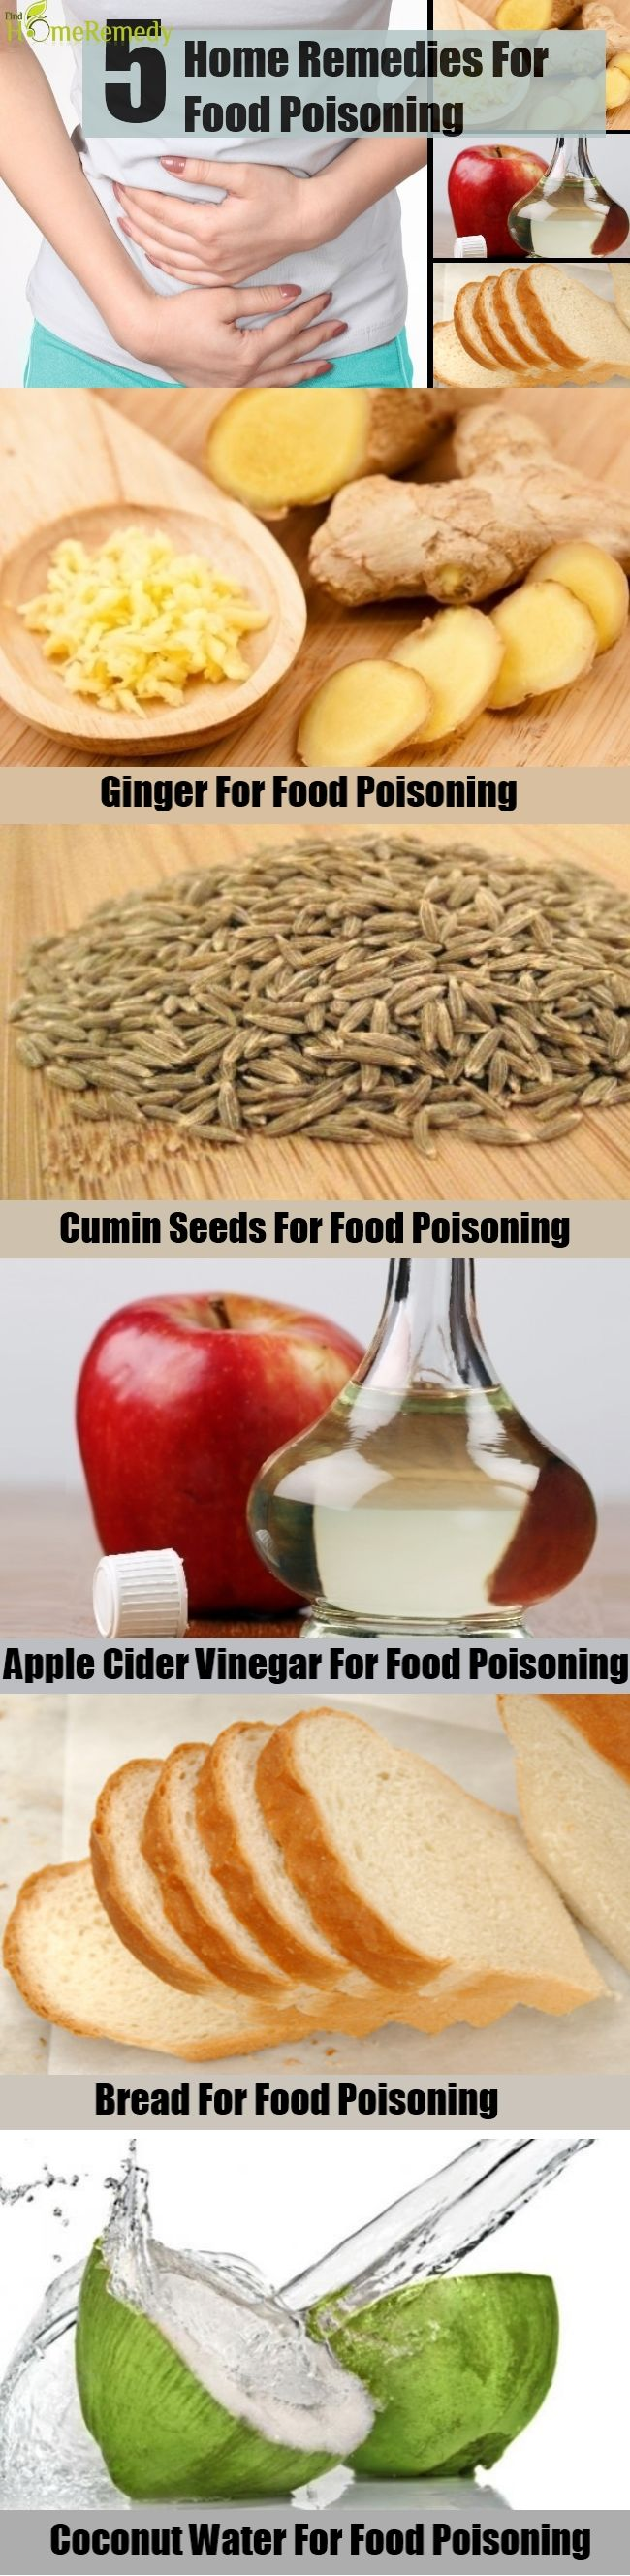 5 Excellent Home Remedies For Food Poisoning